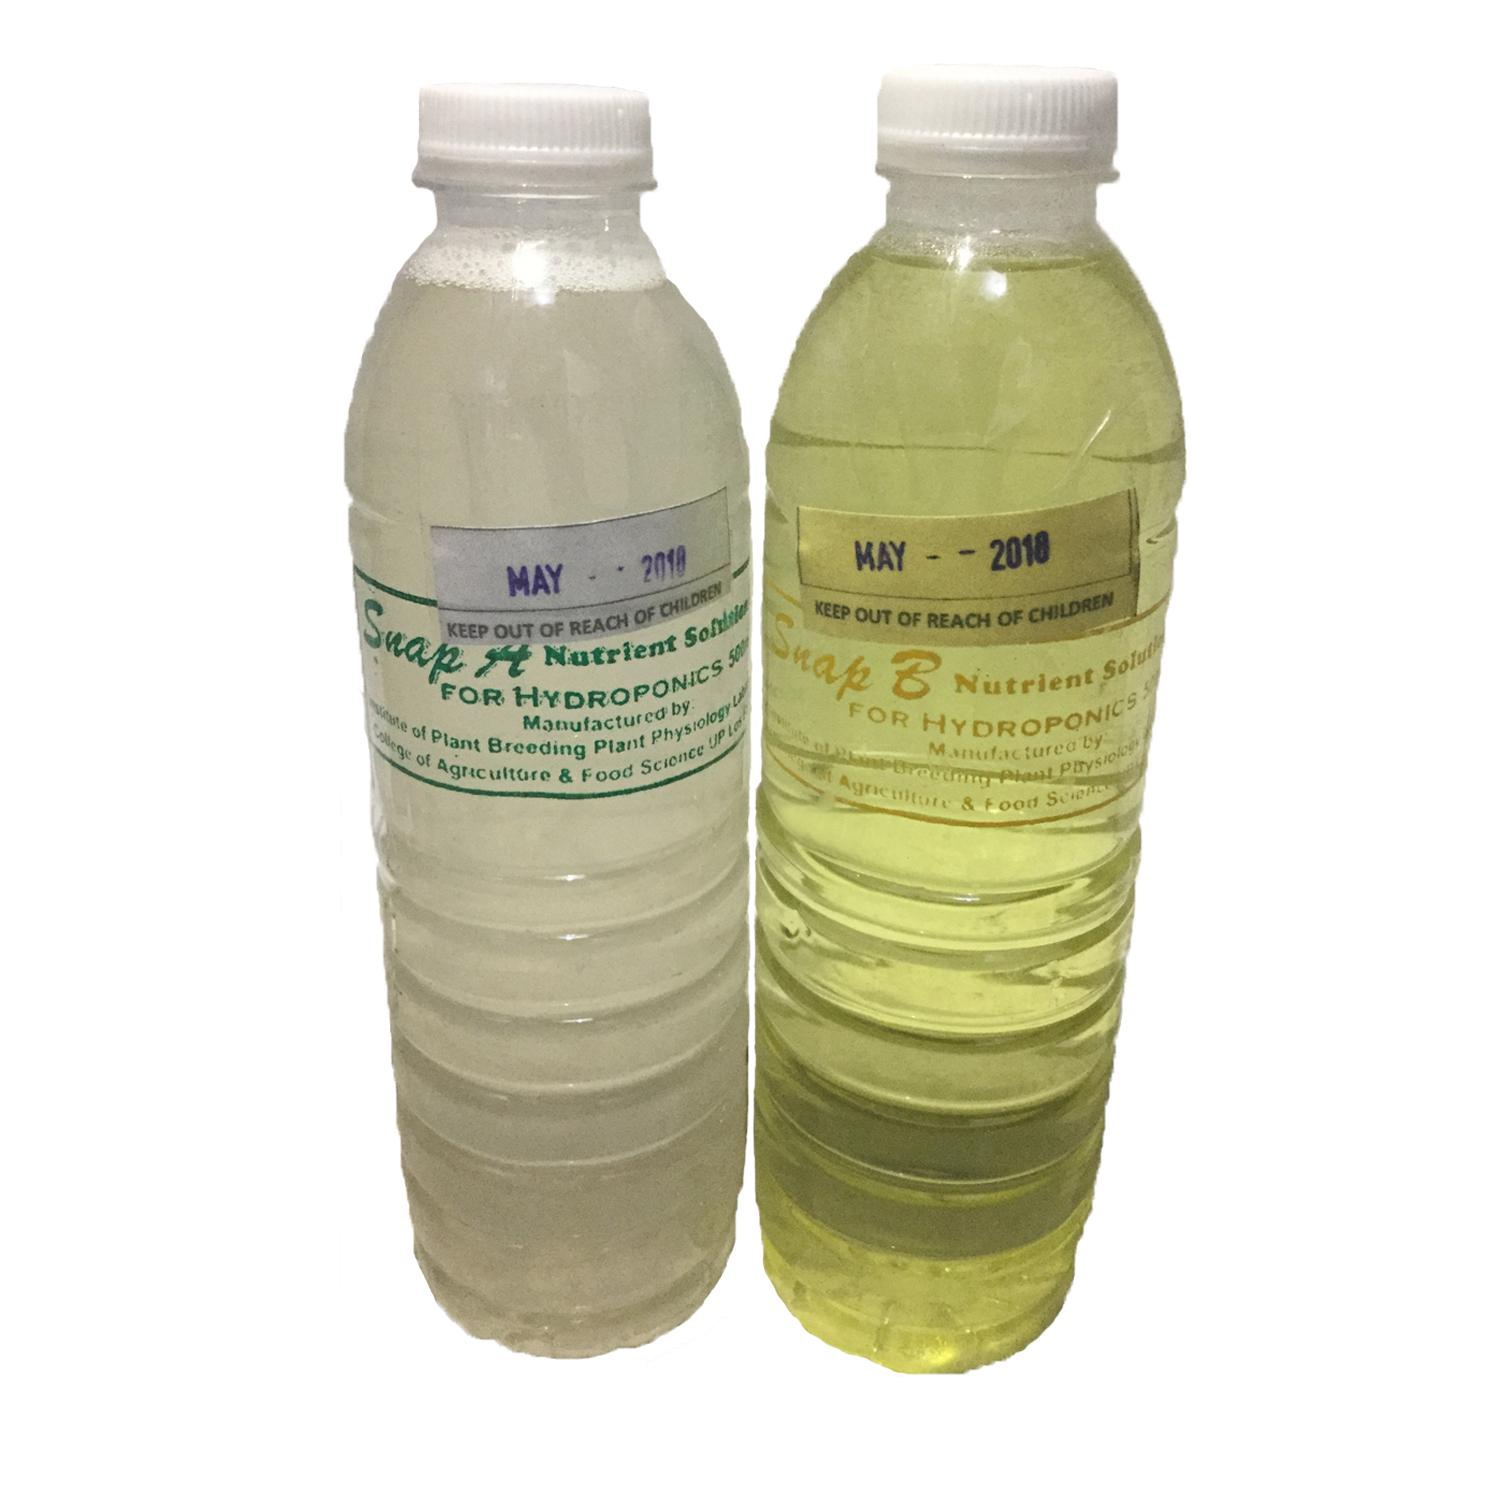 SNAP Hydroponics Nutrient Solution Philippines